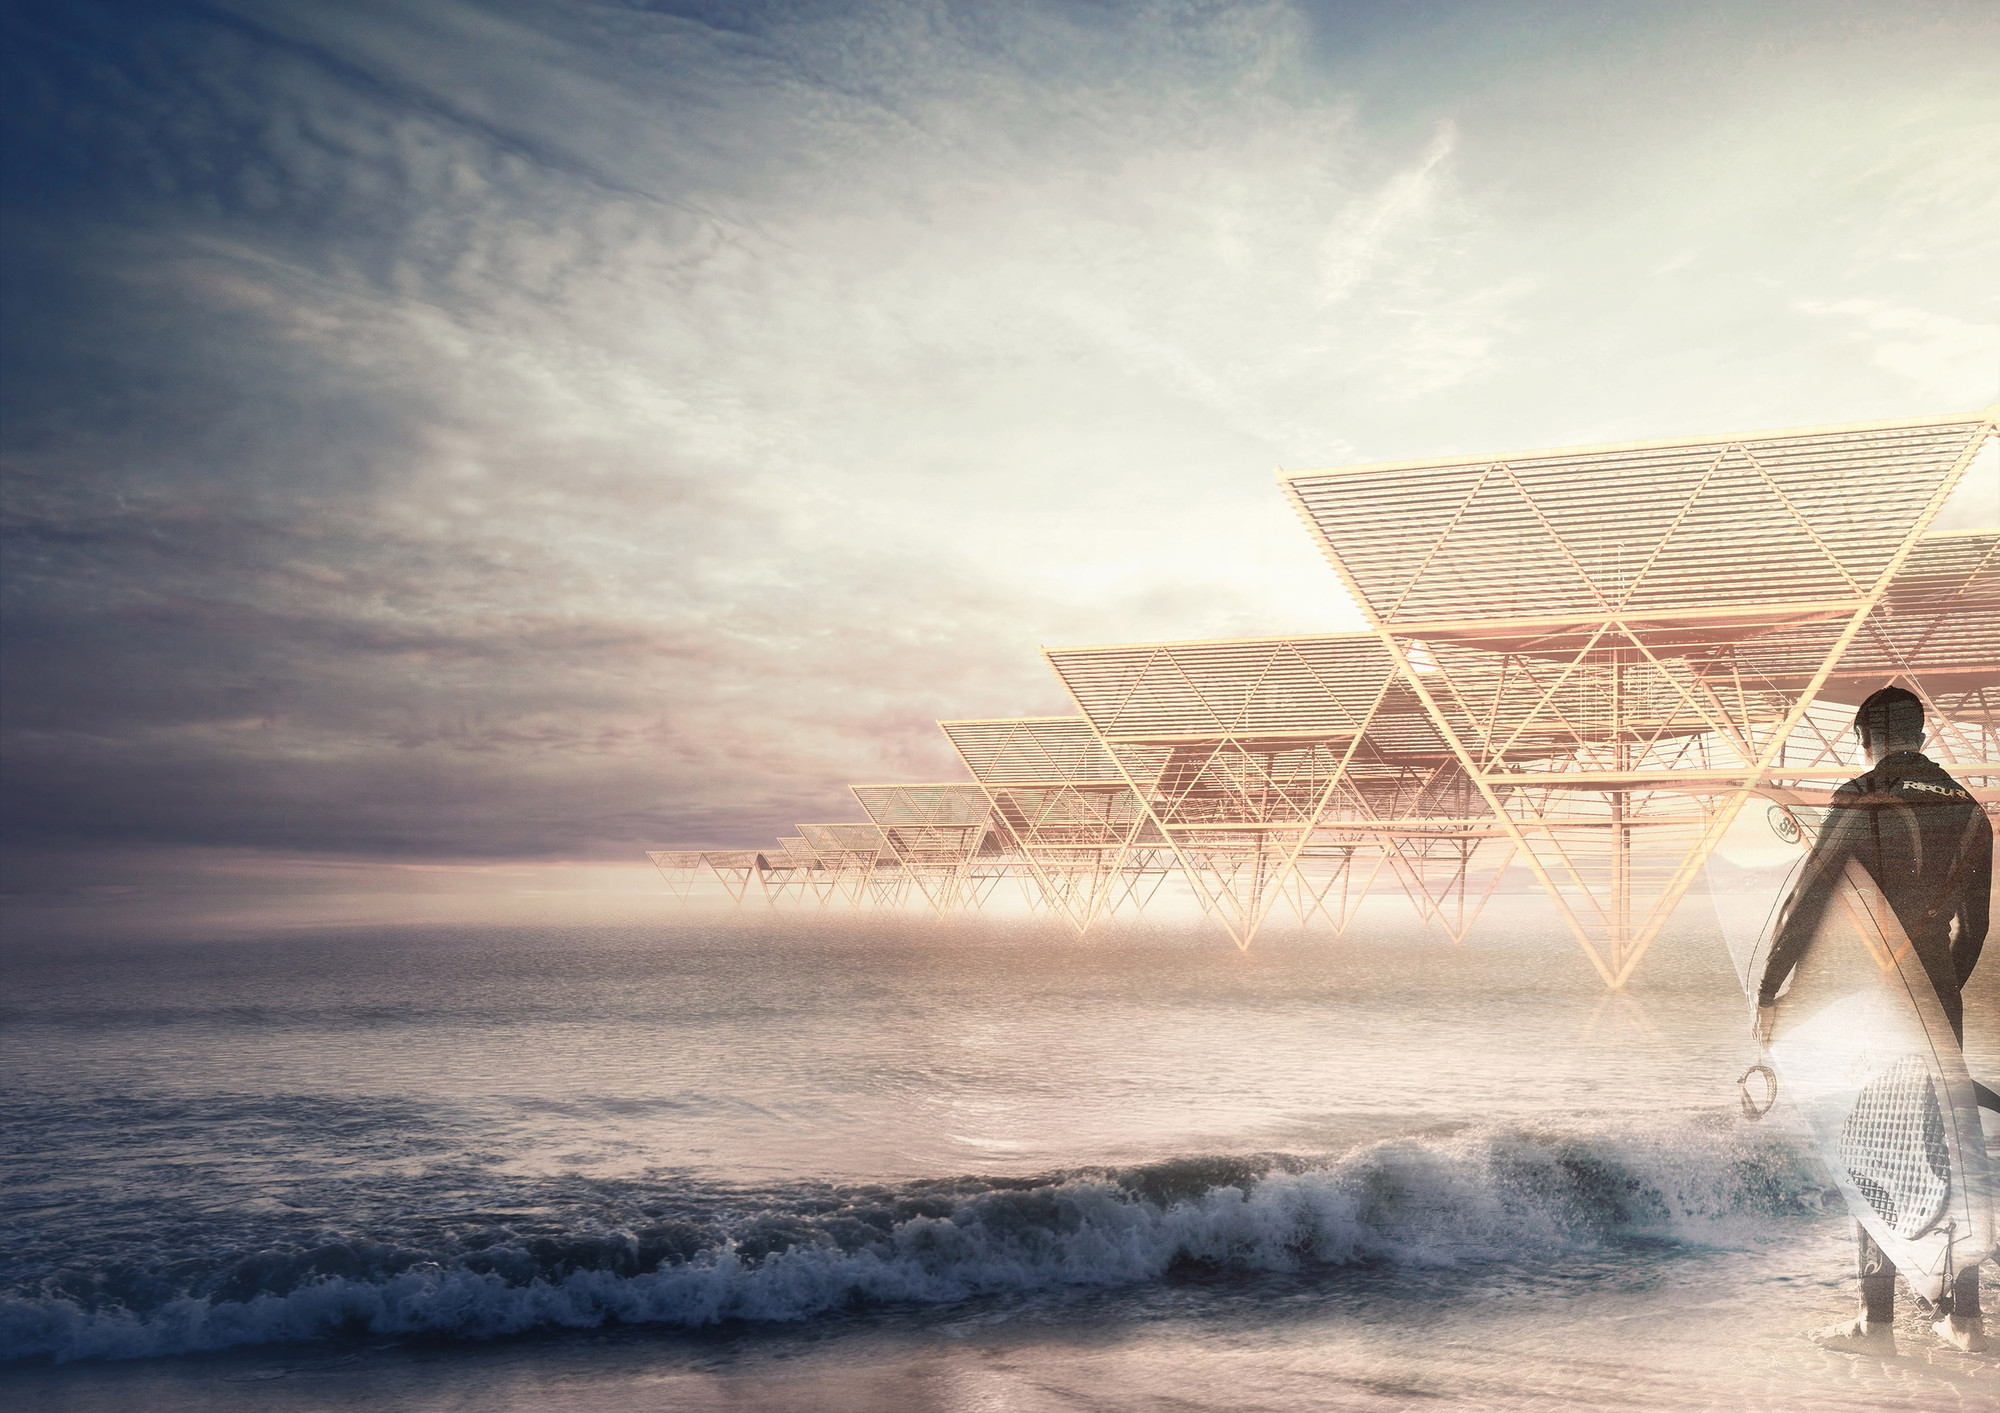 Barberio Colella ARC's Lanterns Sea Village Proposes Non-Invasive Ocean Dwellings for Surfers, Sea Lanterns Village. Image Courtesy of Barberio Colella ARC